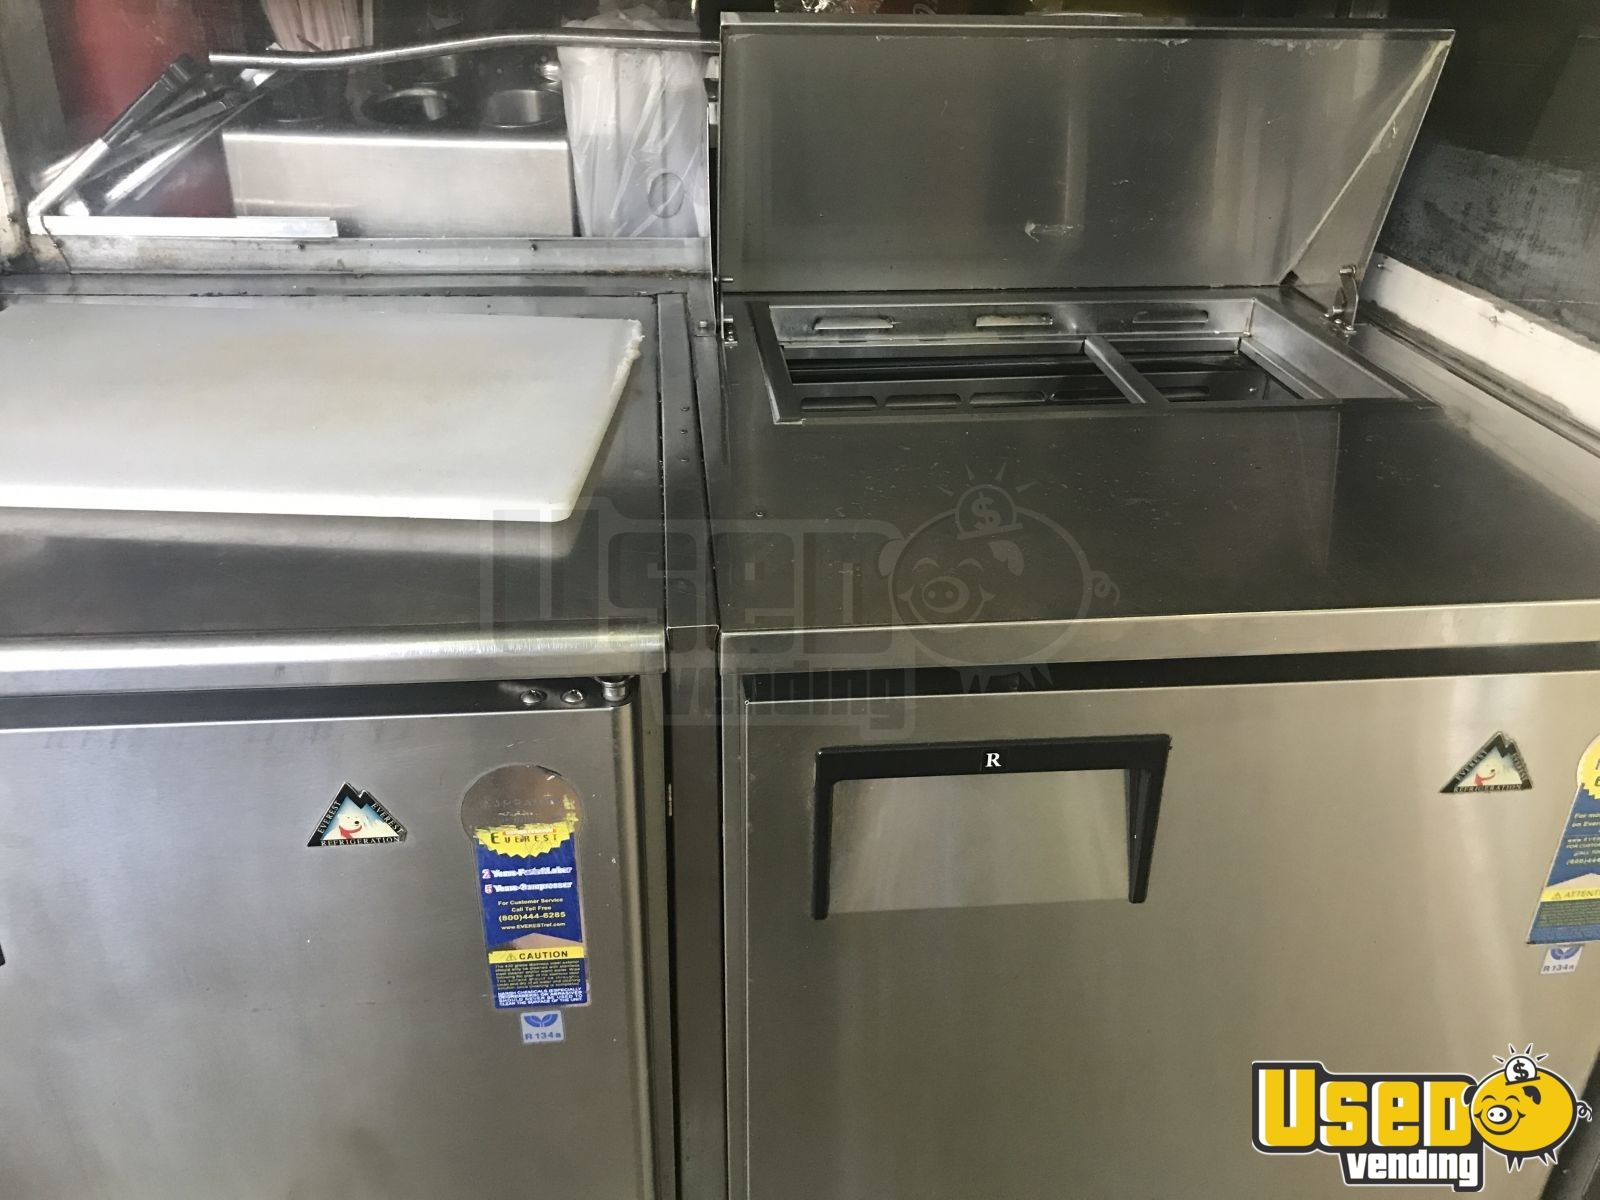 2014 Kareem Manufacturing Co. Model No.- K-100d Serial No.- K 320 Cart 9 California for Sale - 9